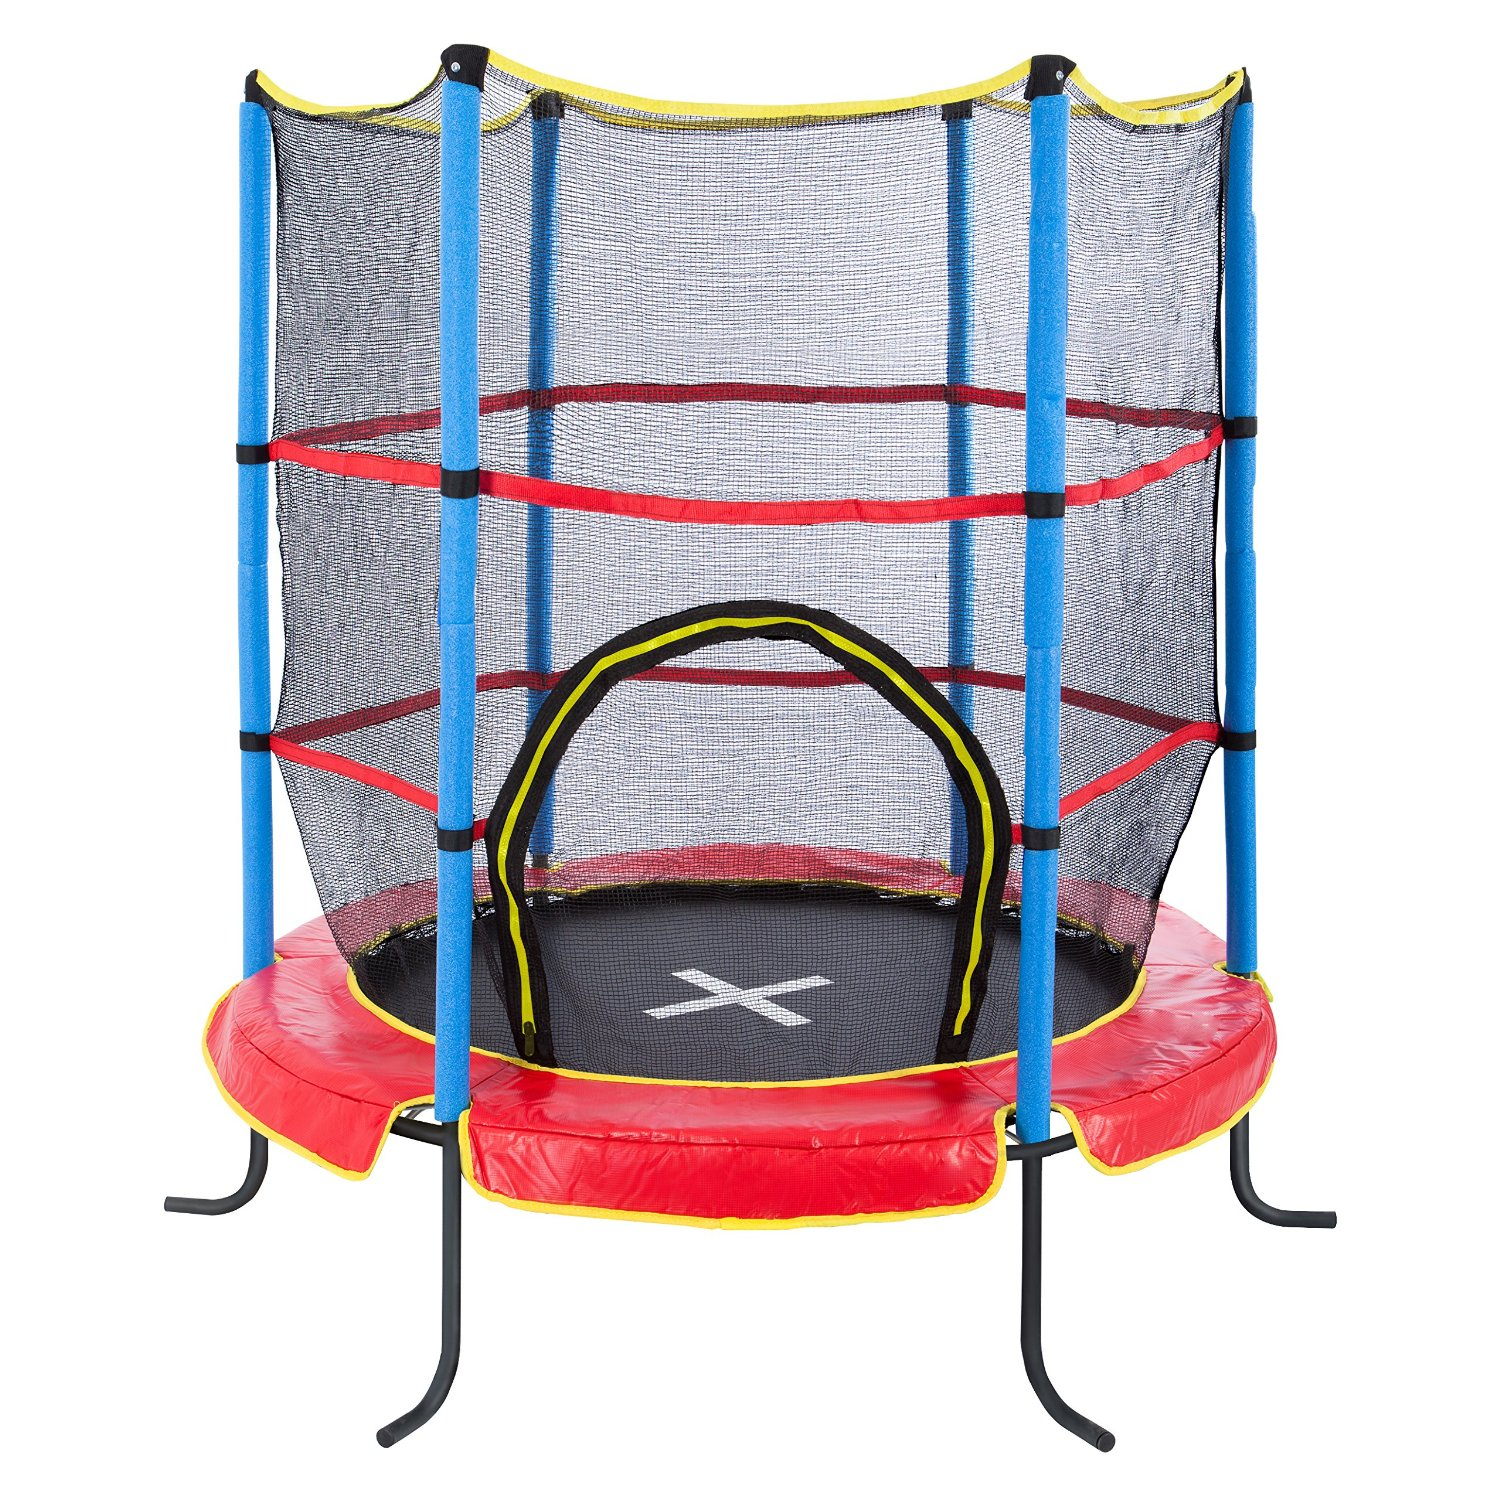 Ultrasport Kindertrampolin Jumper 140 cm